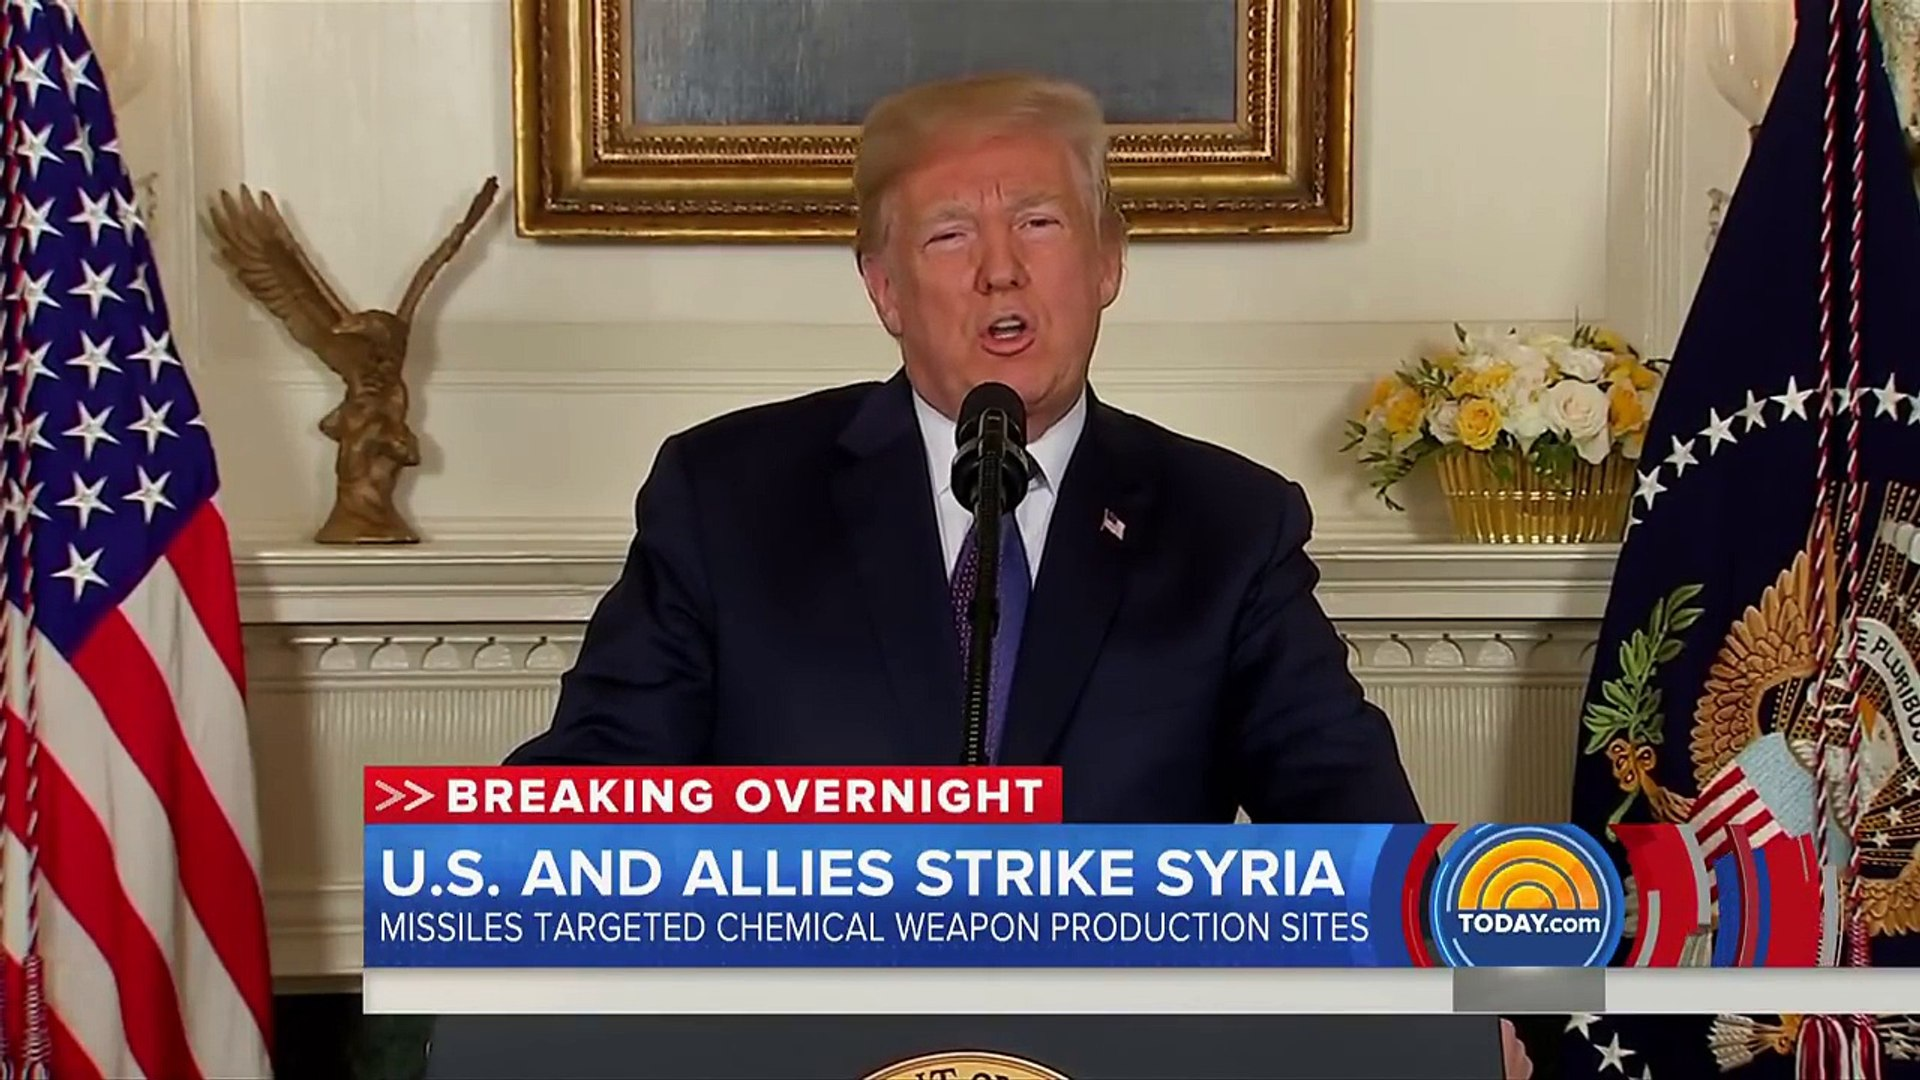 Trump Announces Strikes On Syria After Suspected Chemical Weapons Attack _ TODAY